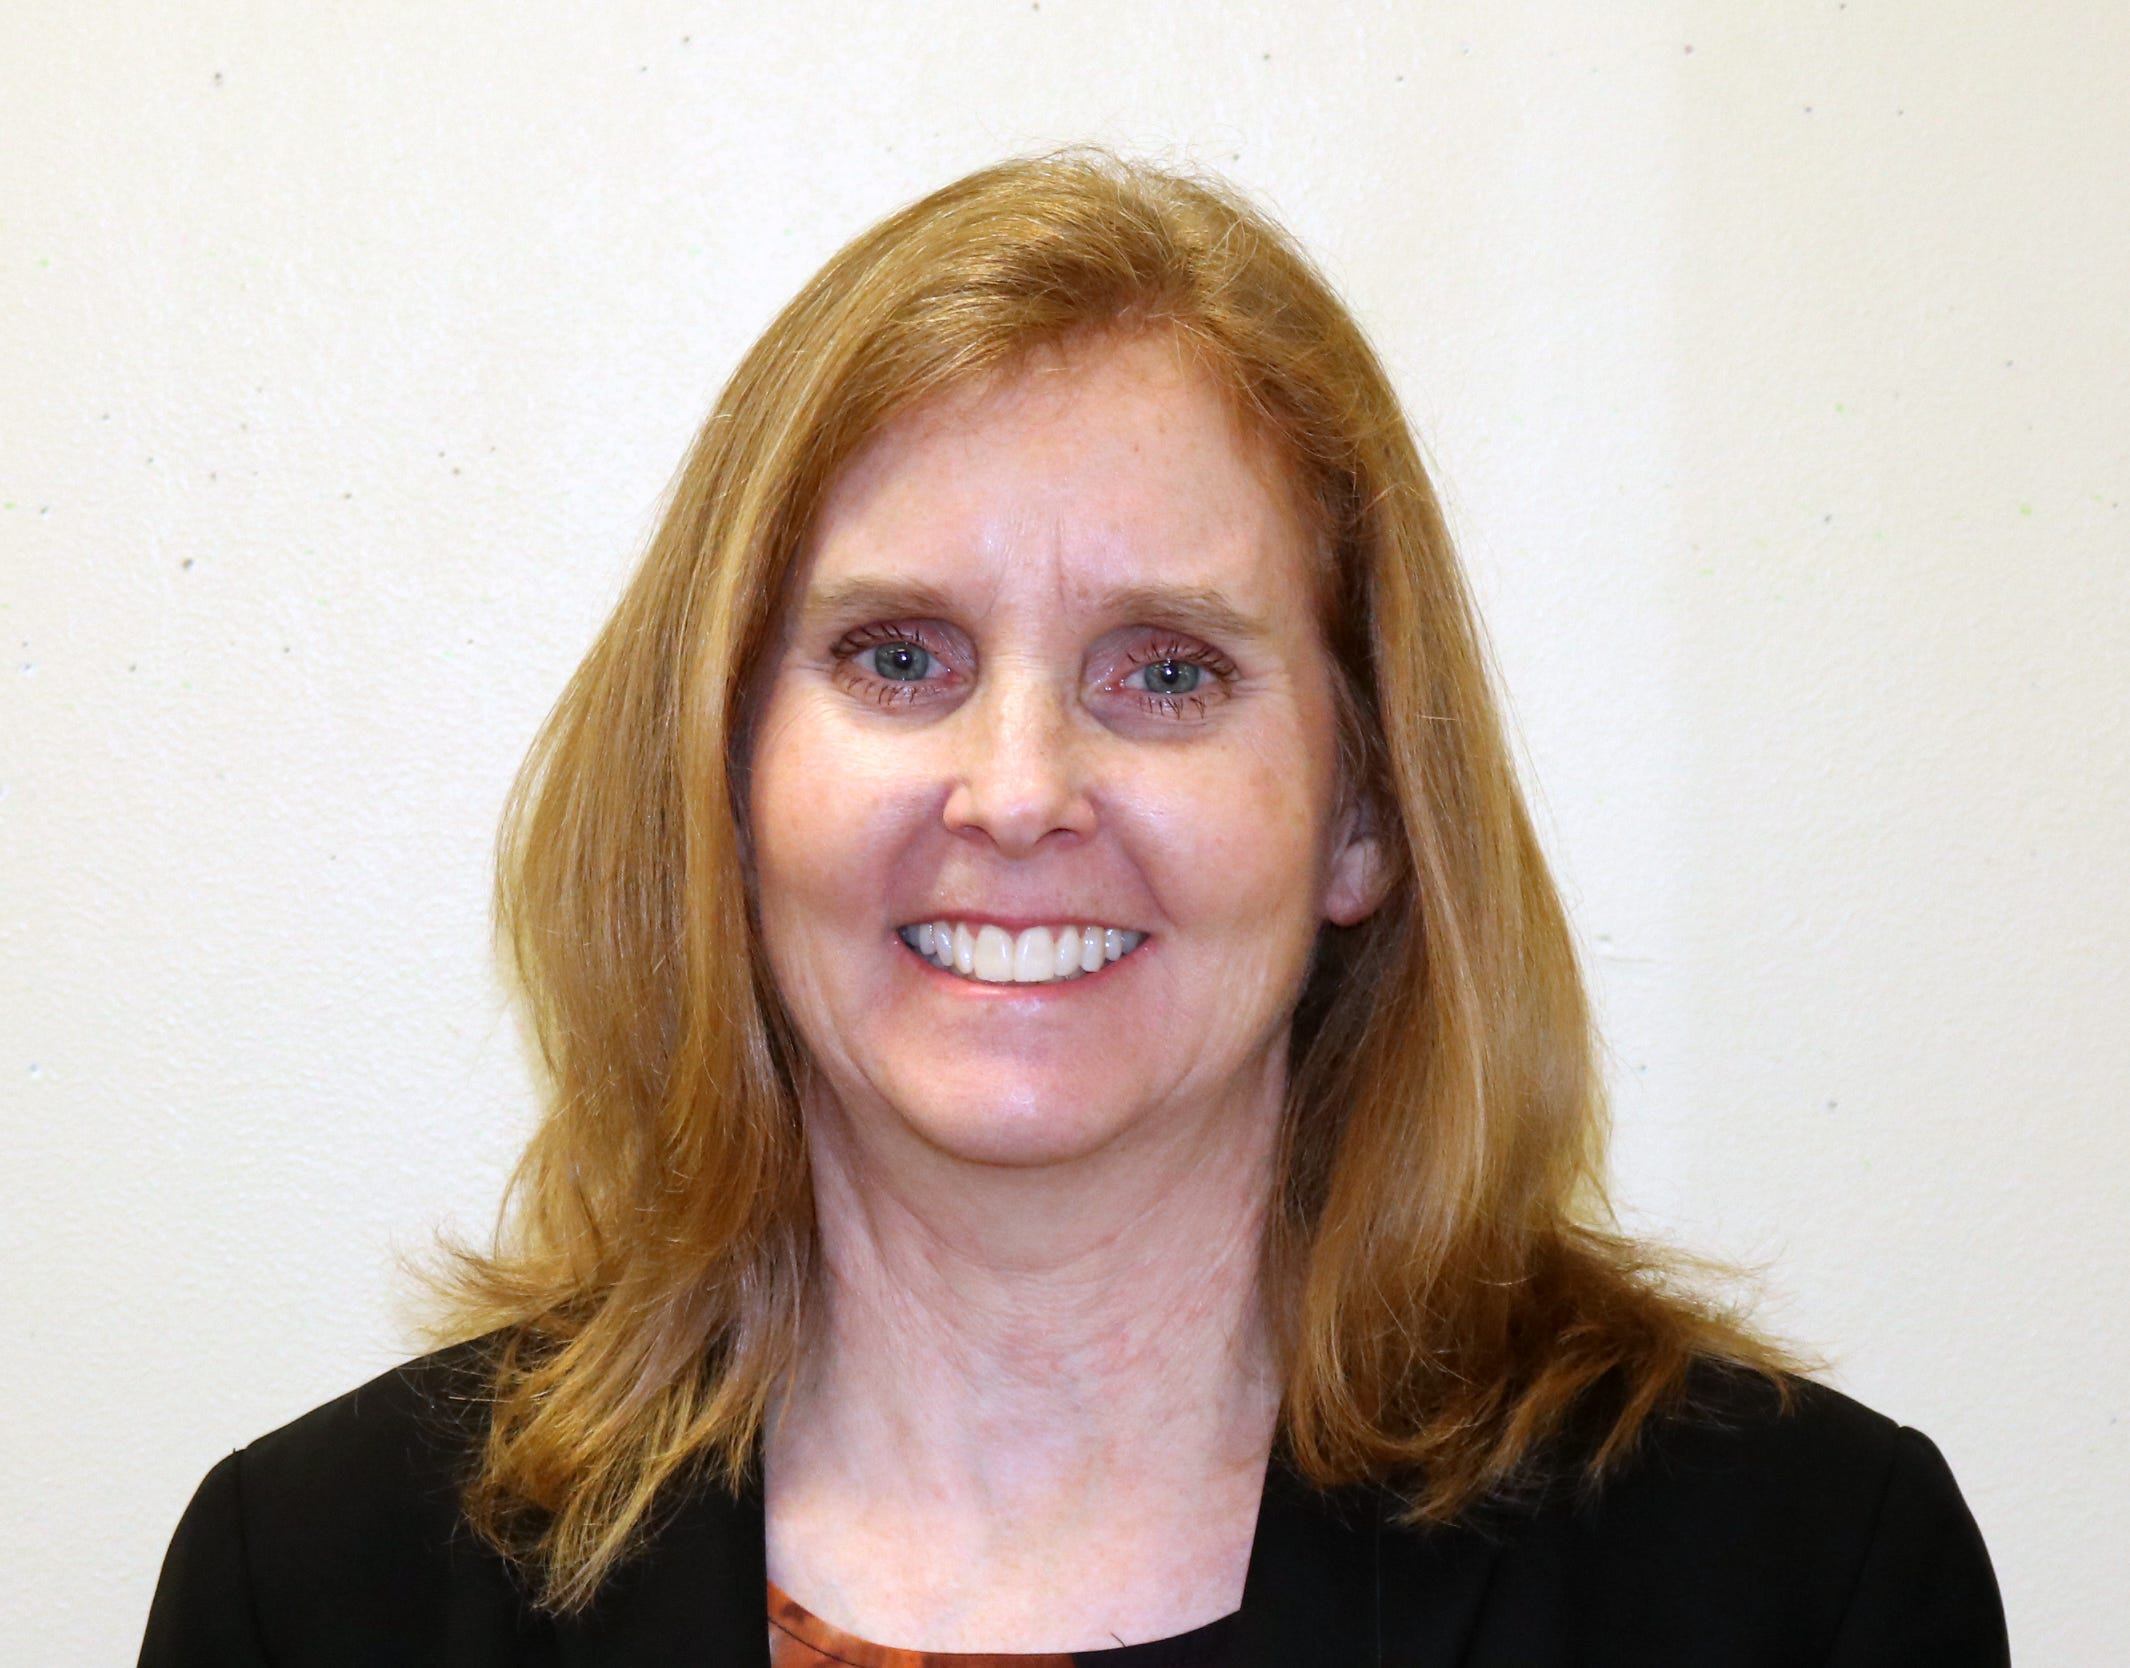 Erin Prince is a candidate for the position of South Kitsap School District superintendent. The school board announced three finalists on Feb. 25, 2019.